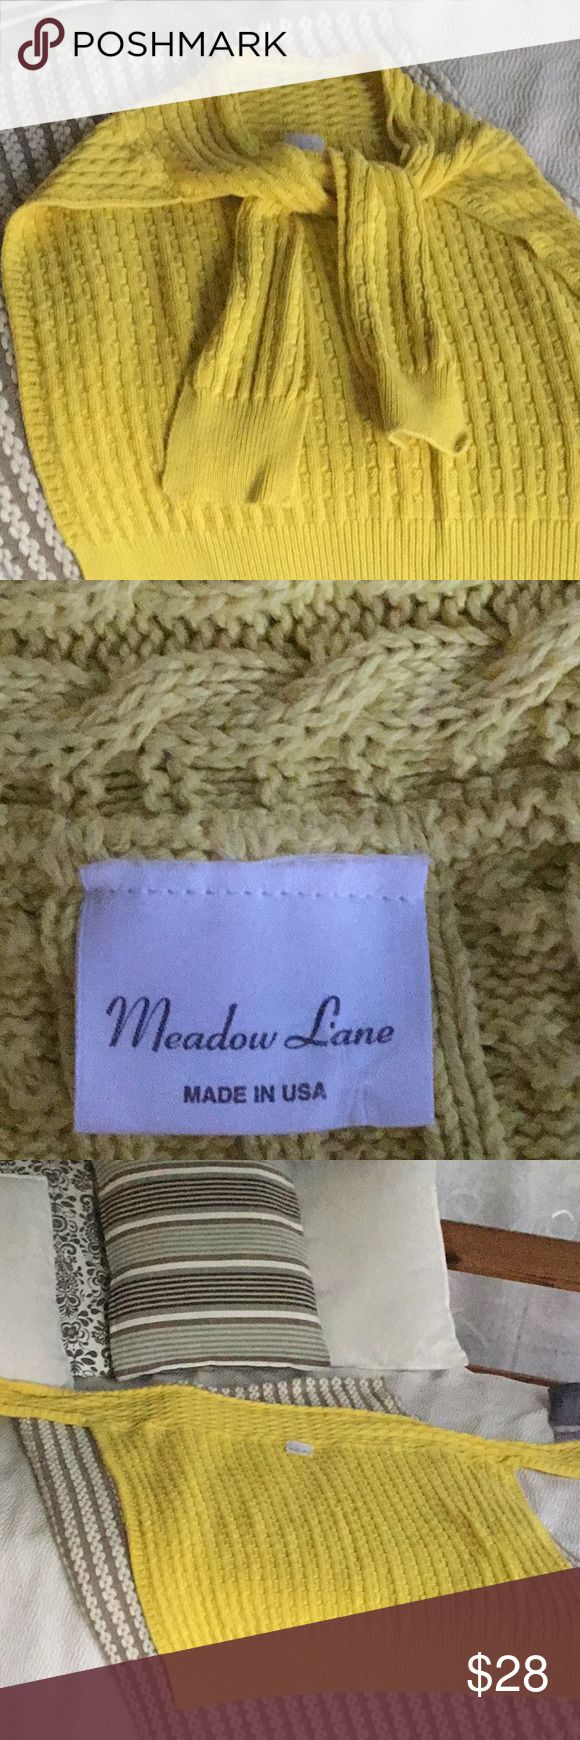 Perfect 4 any occasion Sweater Wrap! Cable knit sweater wrap for those cool nights even inside restaurants, movies, malls and doctors offices Layer over anything. Looks great with charcoal gray. A pretty shade of yellow by Meadow Lane in the USA. One size fits all! Meadow Lane Sweaters Shrugs & Ponchos